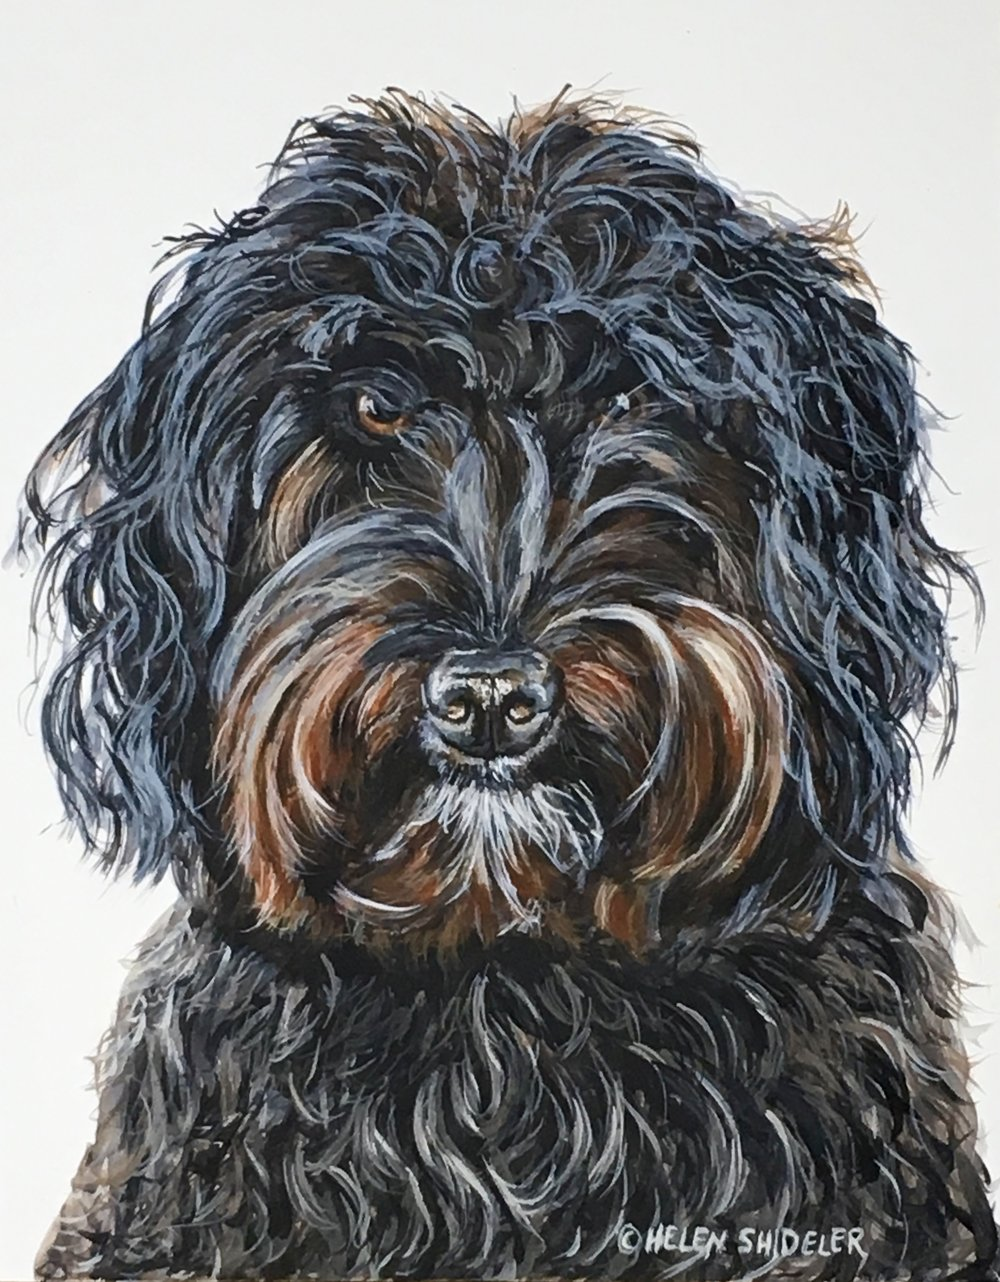 Murphy pet portrait by Helen Shideler